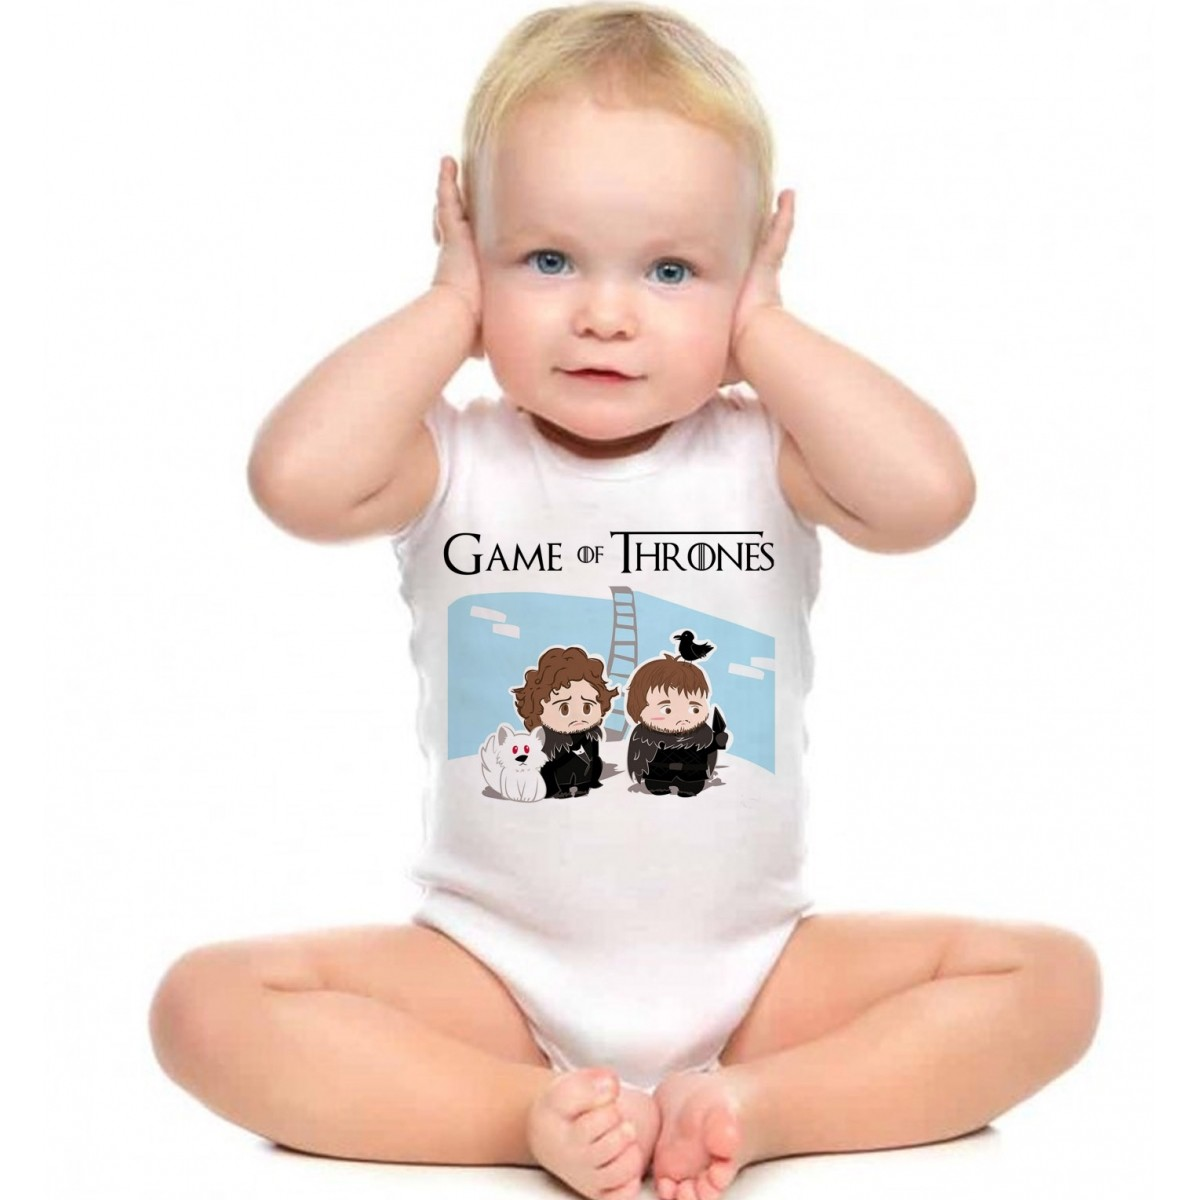 Body Bebê - Filmes - Game of Thrones - White  - Baby Monster S/A